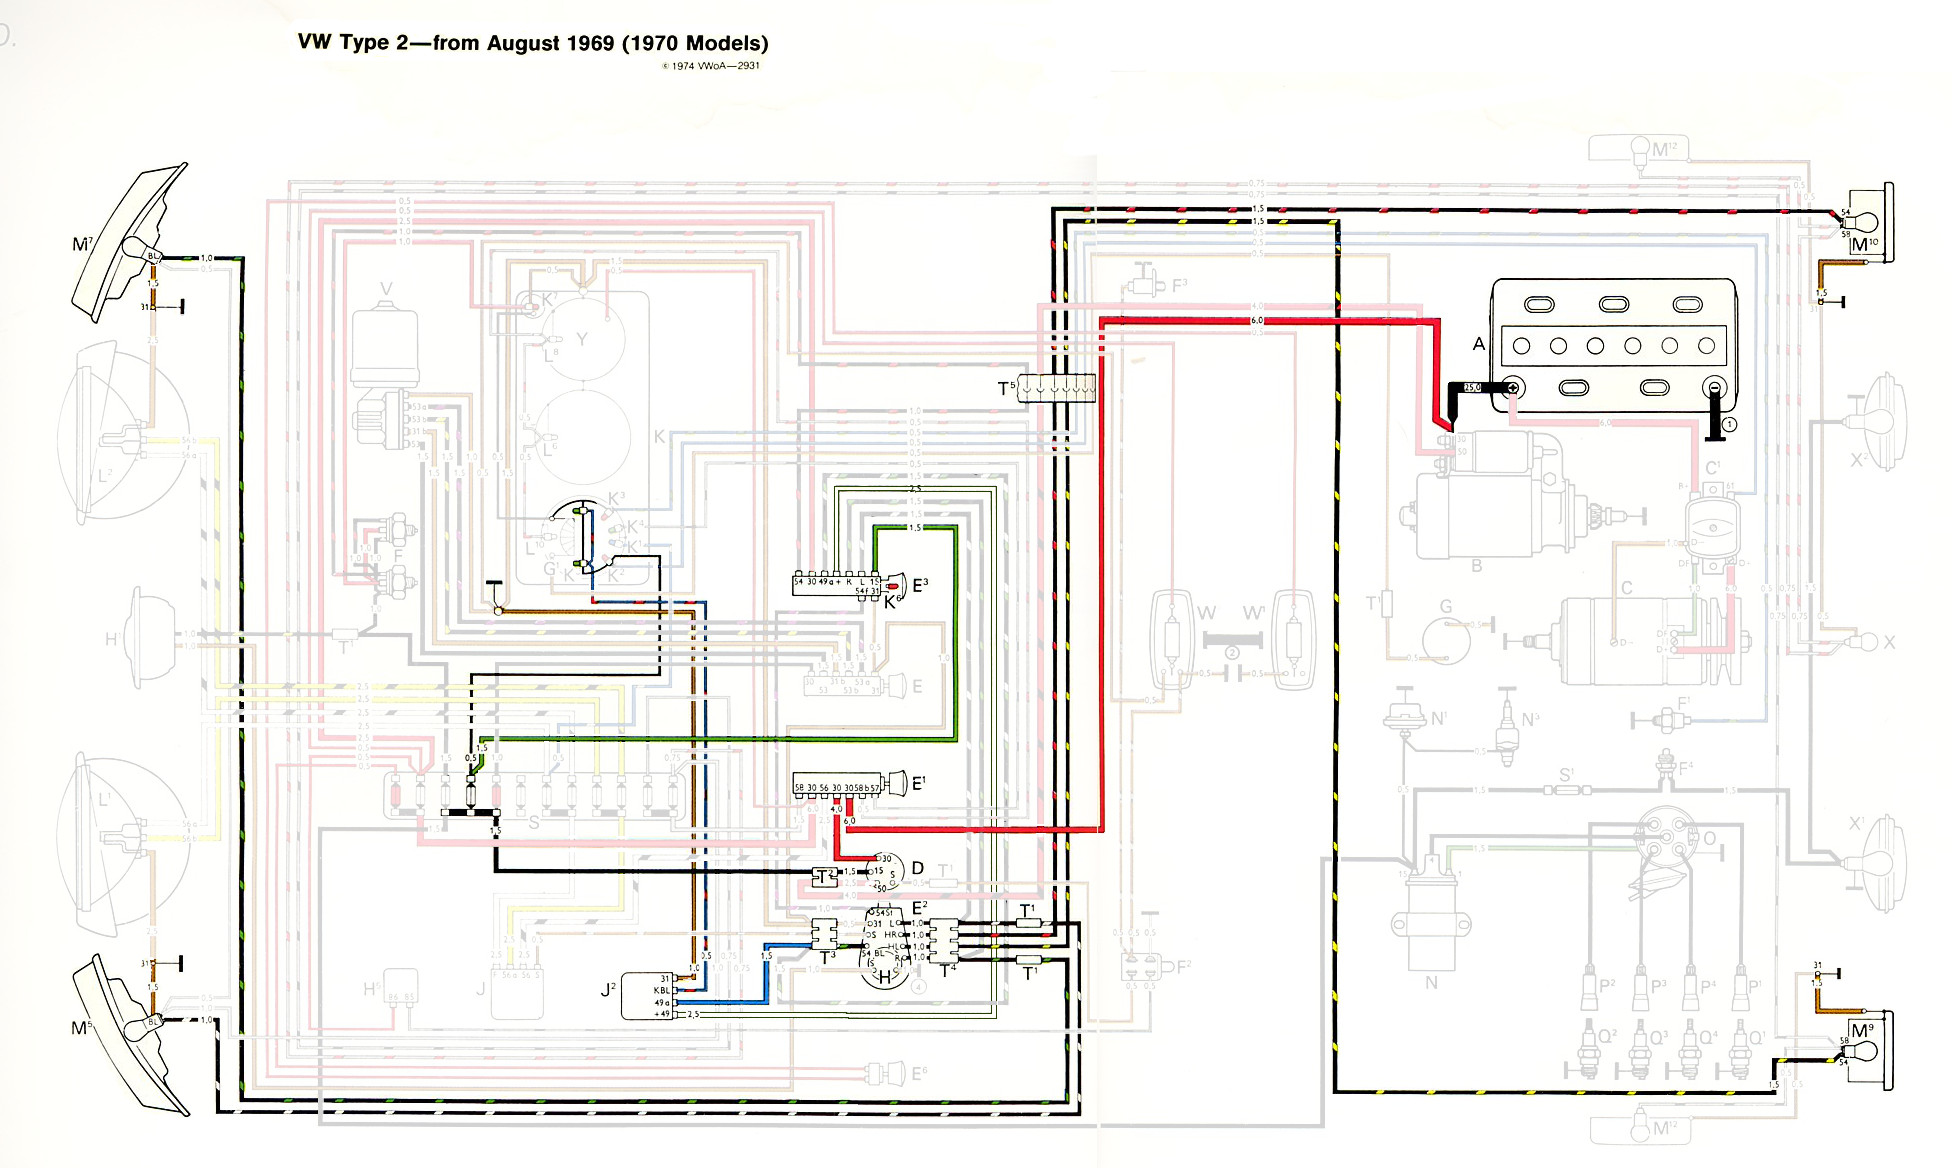 1970bus_signals thesamba com type 2 wiring diagrams bus diagram at aneh.co